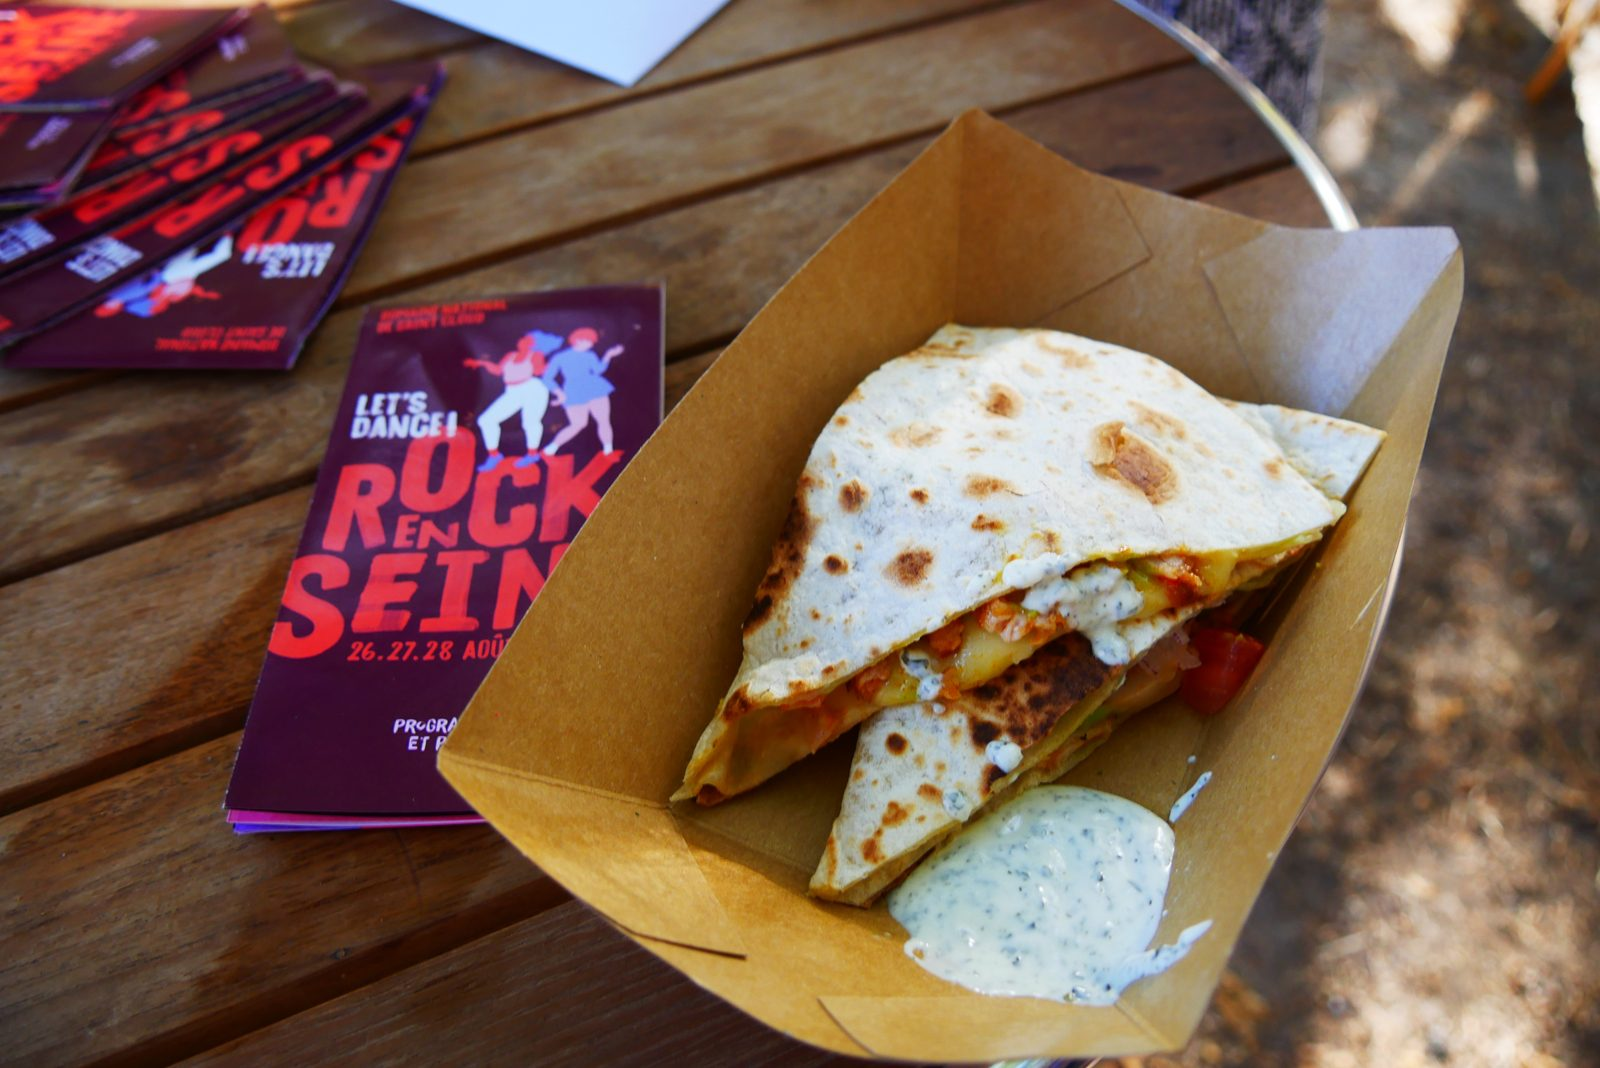 Quesadillas de poulet sauce piquante et fromage raclette richesmonts foodtruck festival Rock en Seine paris photo blog usofparis